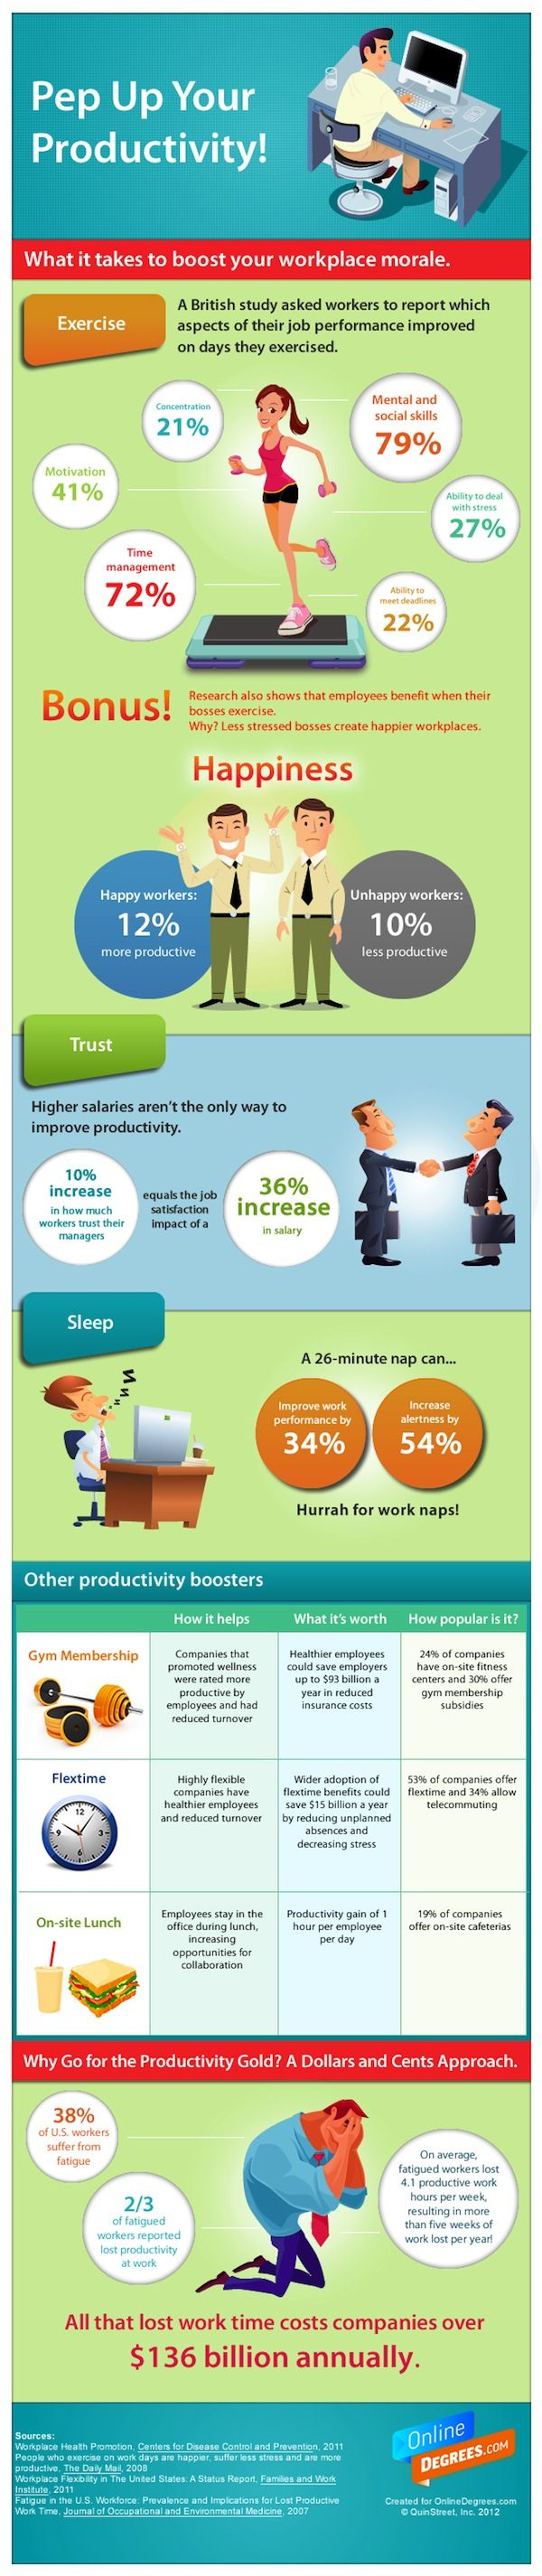 Pep up your productivity [Infographic]  -  found at http://www.webpronews.com/ pep-up-your-productivity-infographic-2012-05